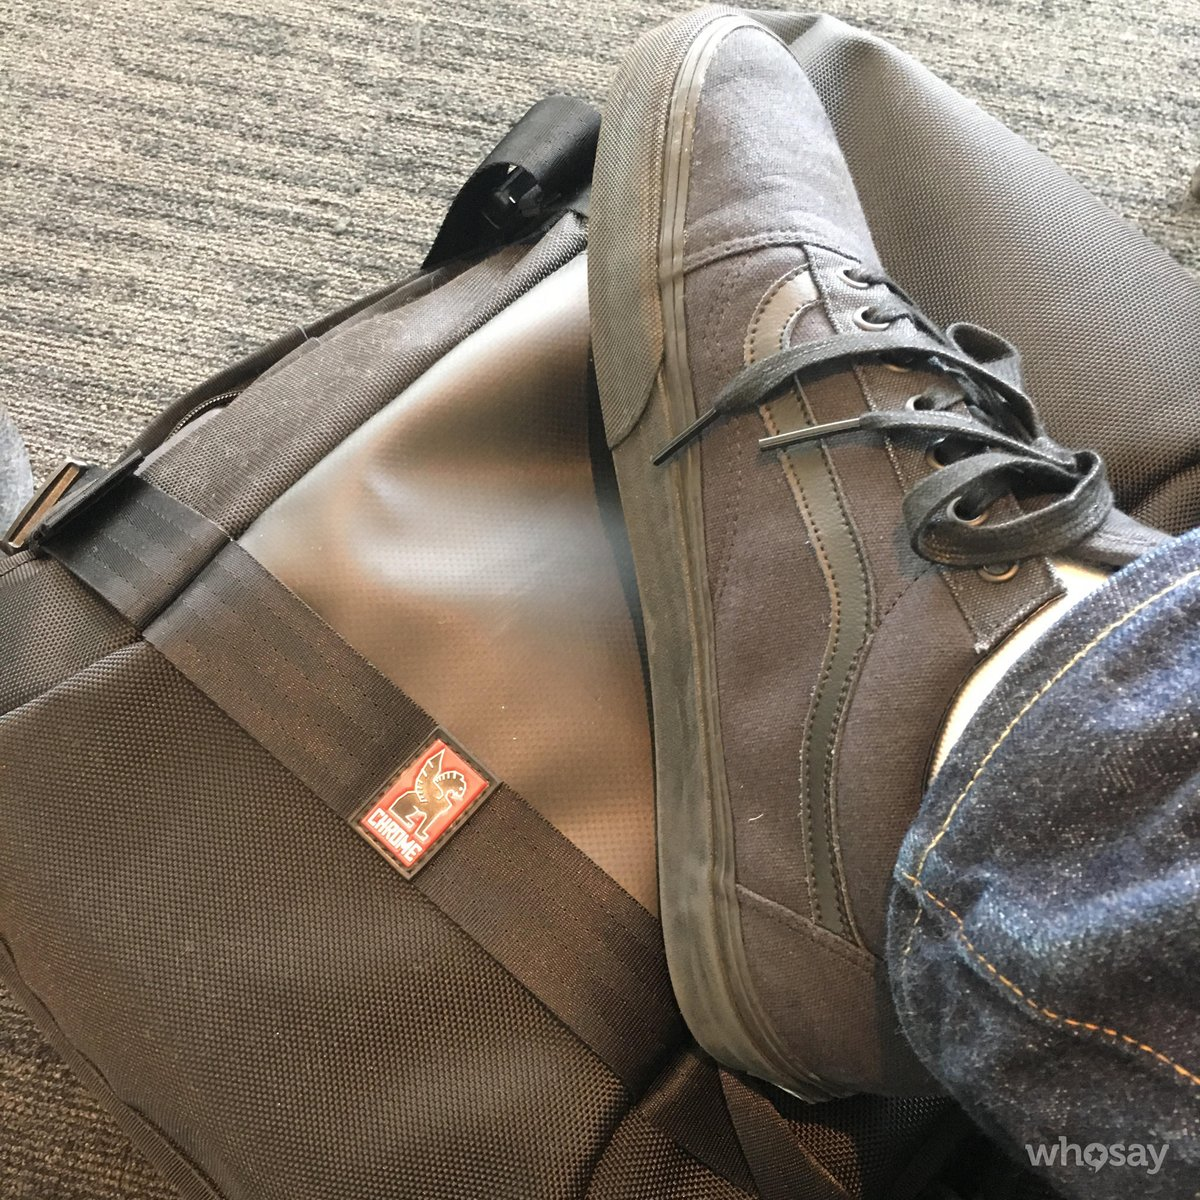 vans kitchen wrought iron chairs chris cosentino on twitter loving my new shoes and chrome industries luggage prototype culinary research trip